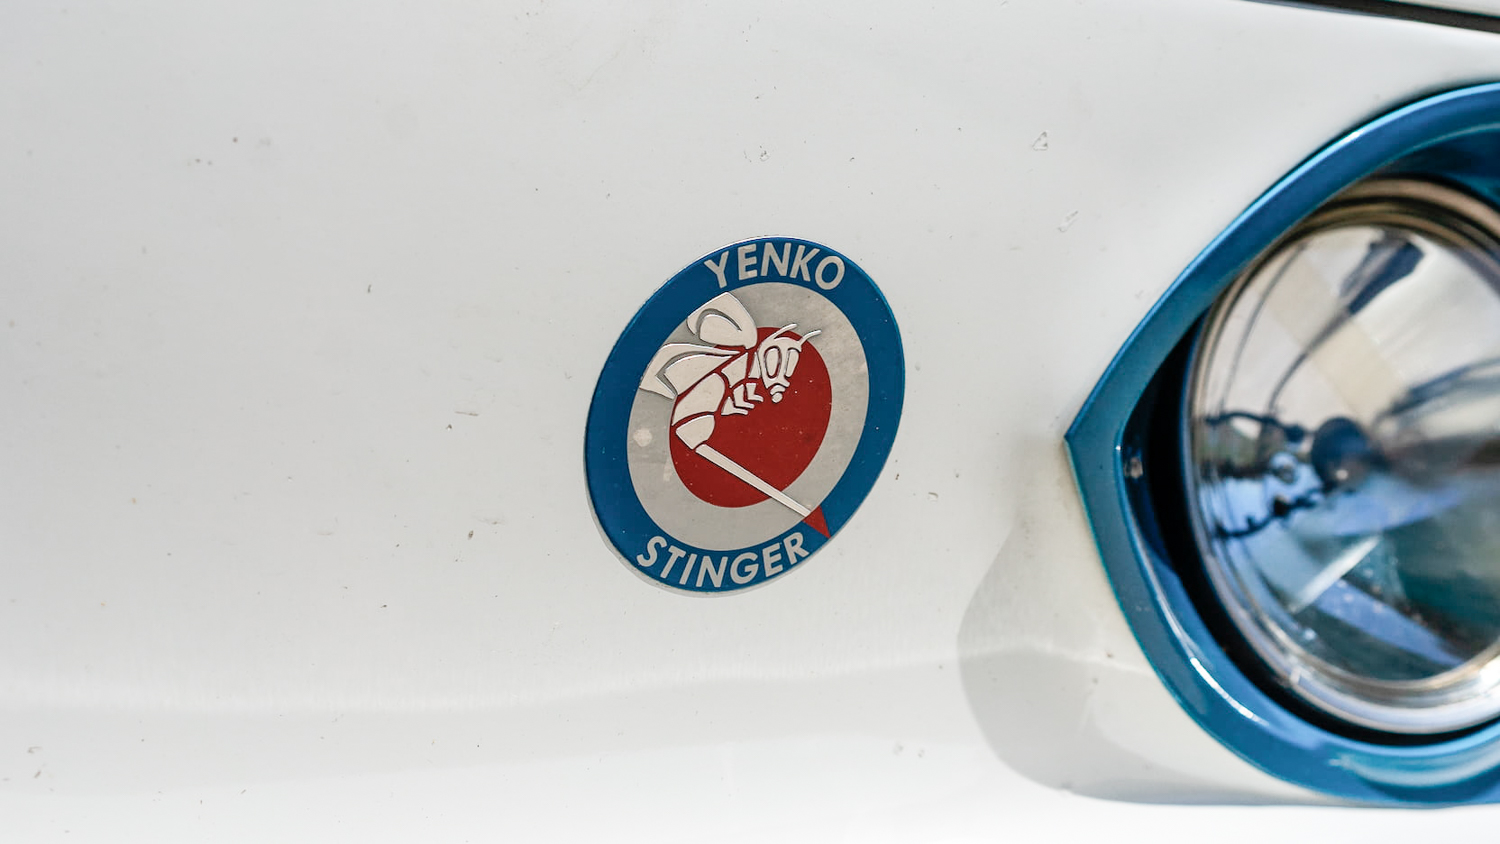 1966 Chevrolet Corvair Yenko Stinger badge